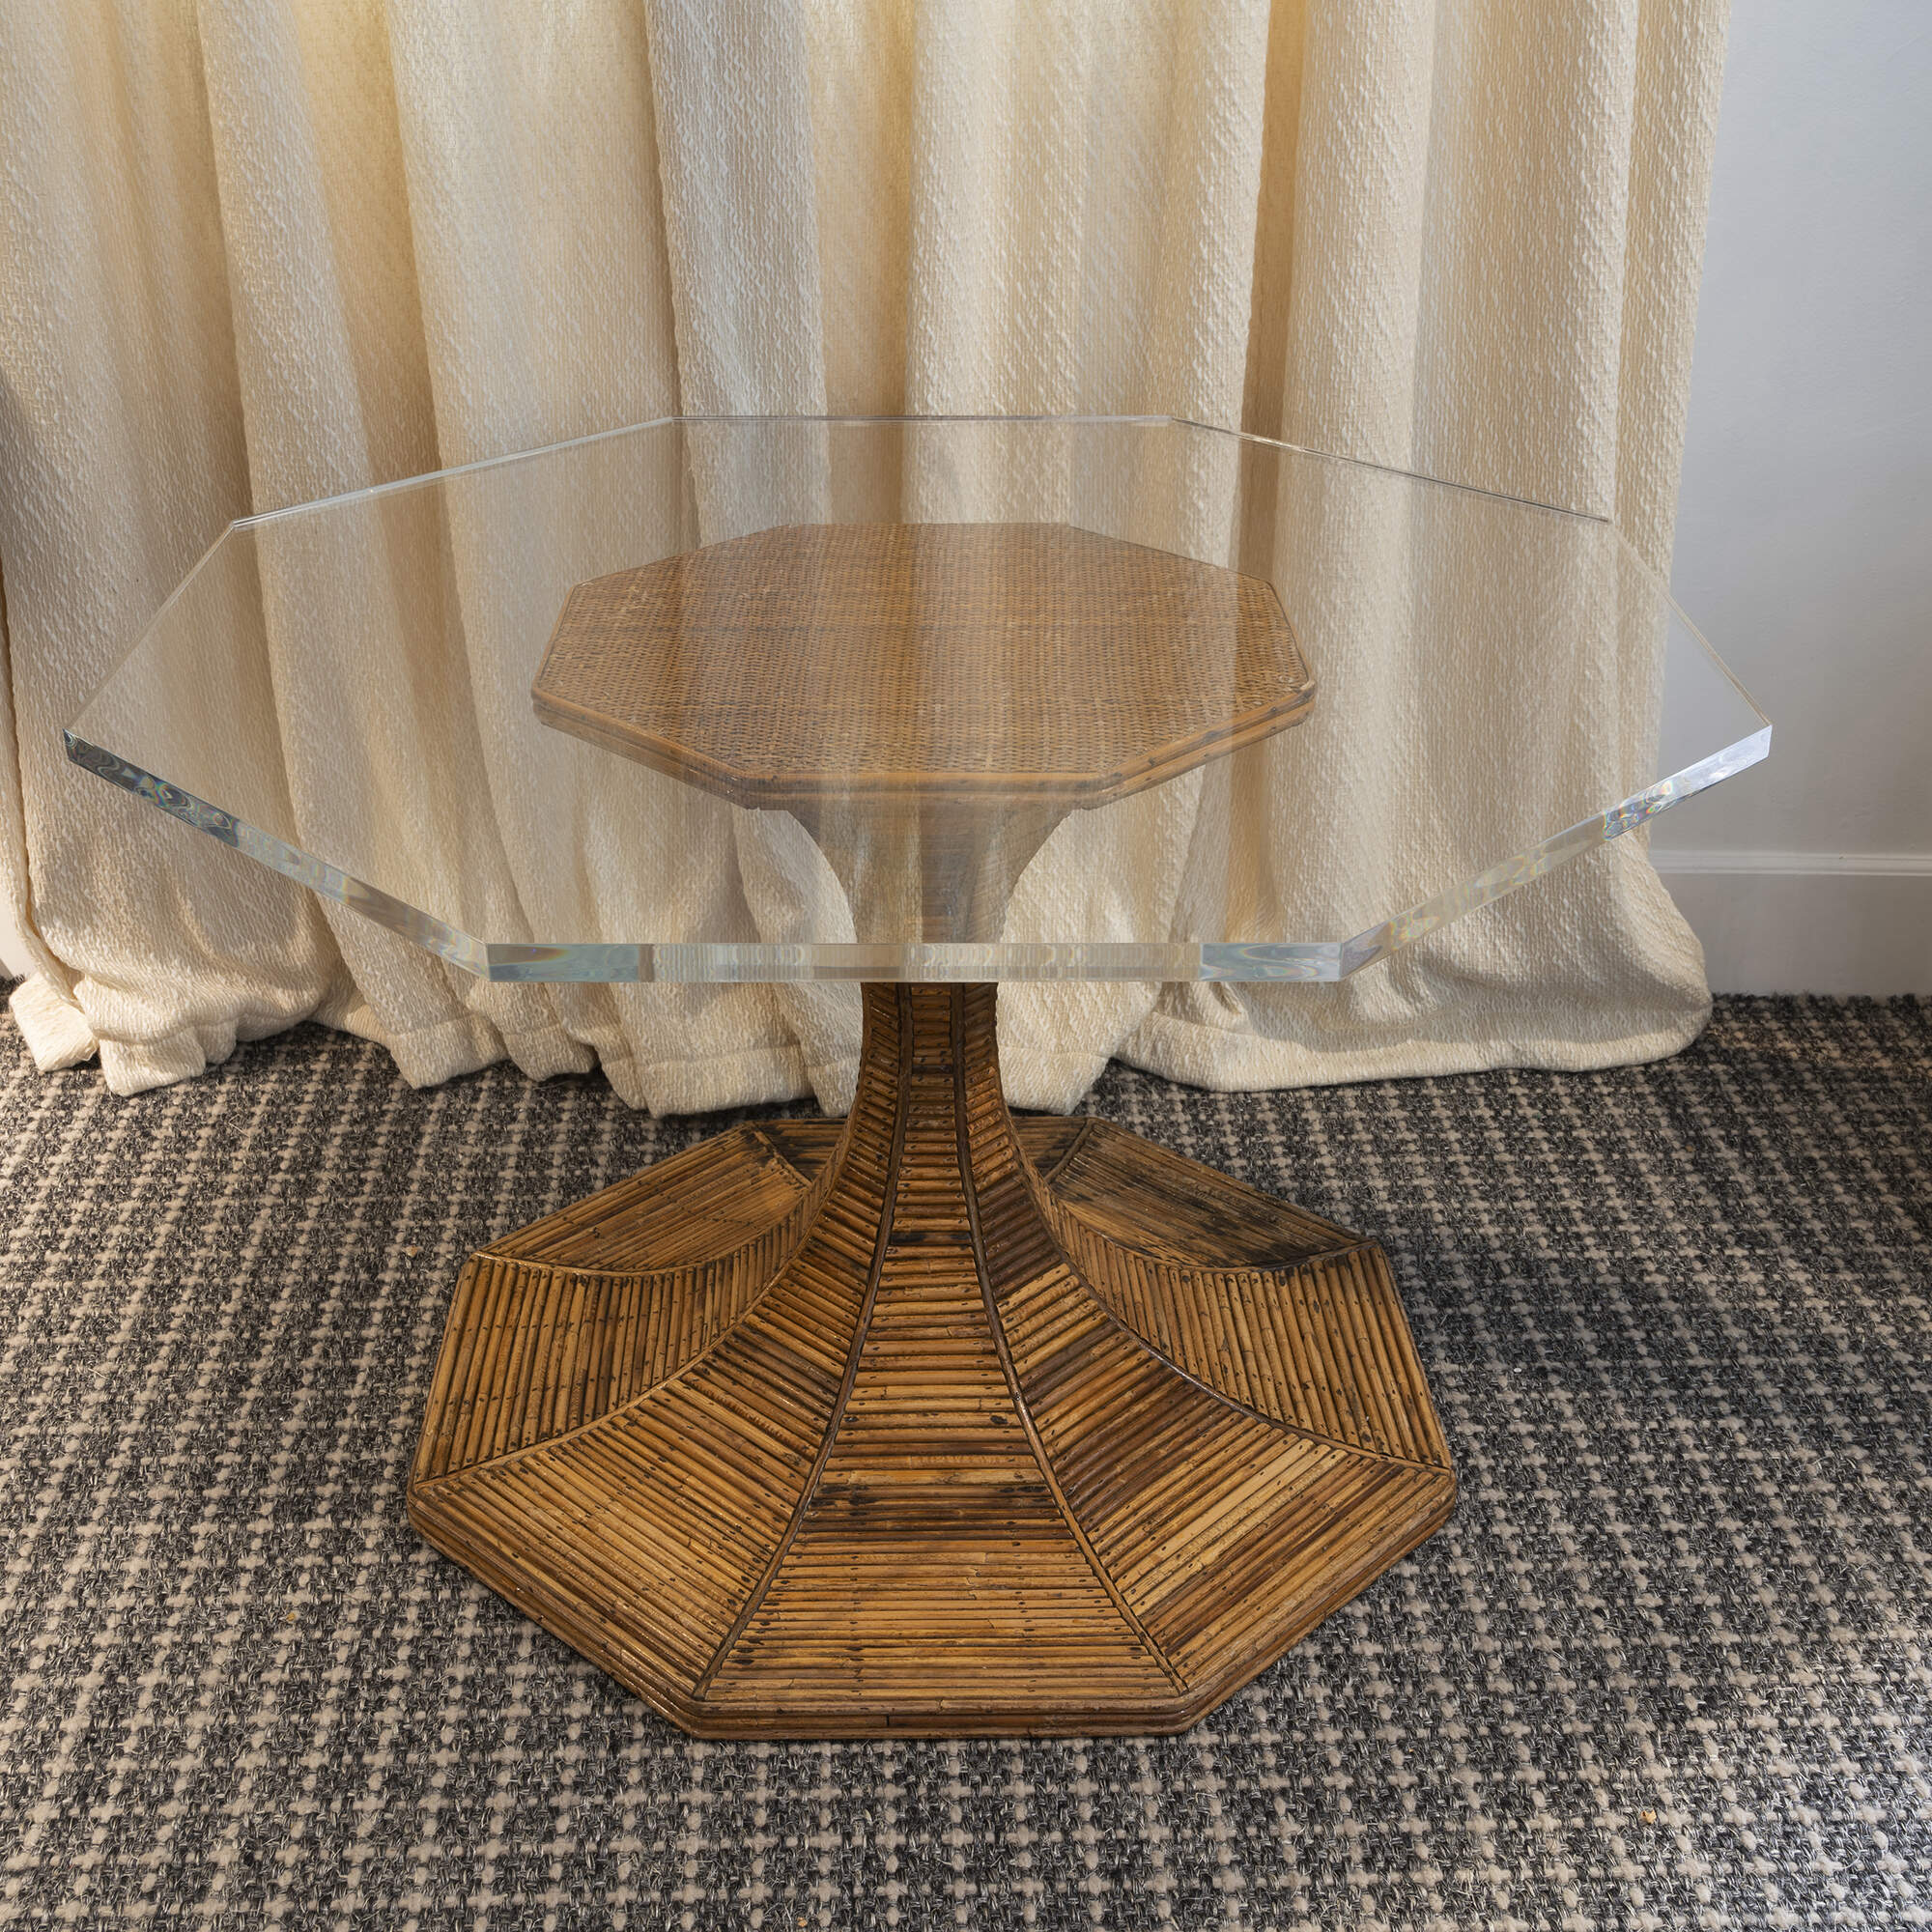 1970s Vivai del Sud Dining Table